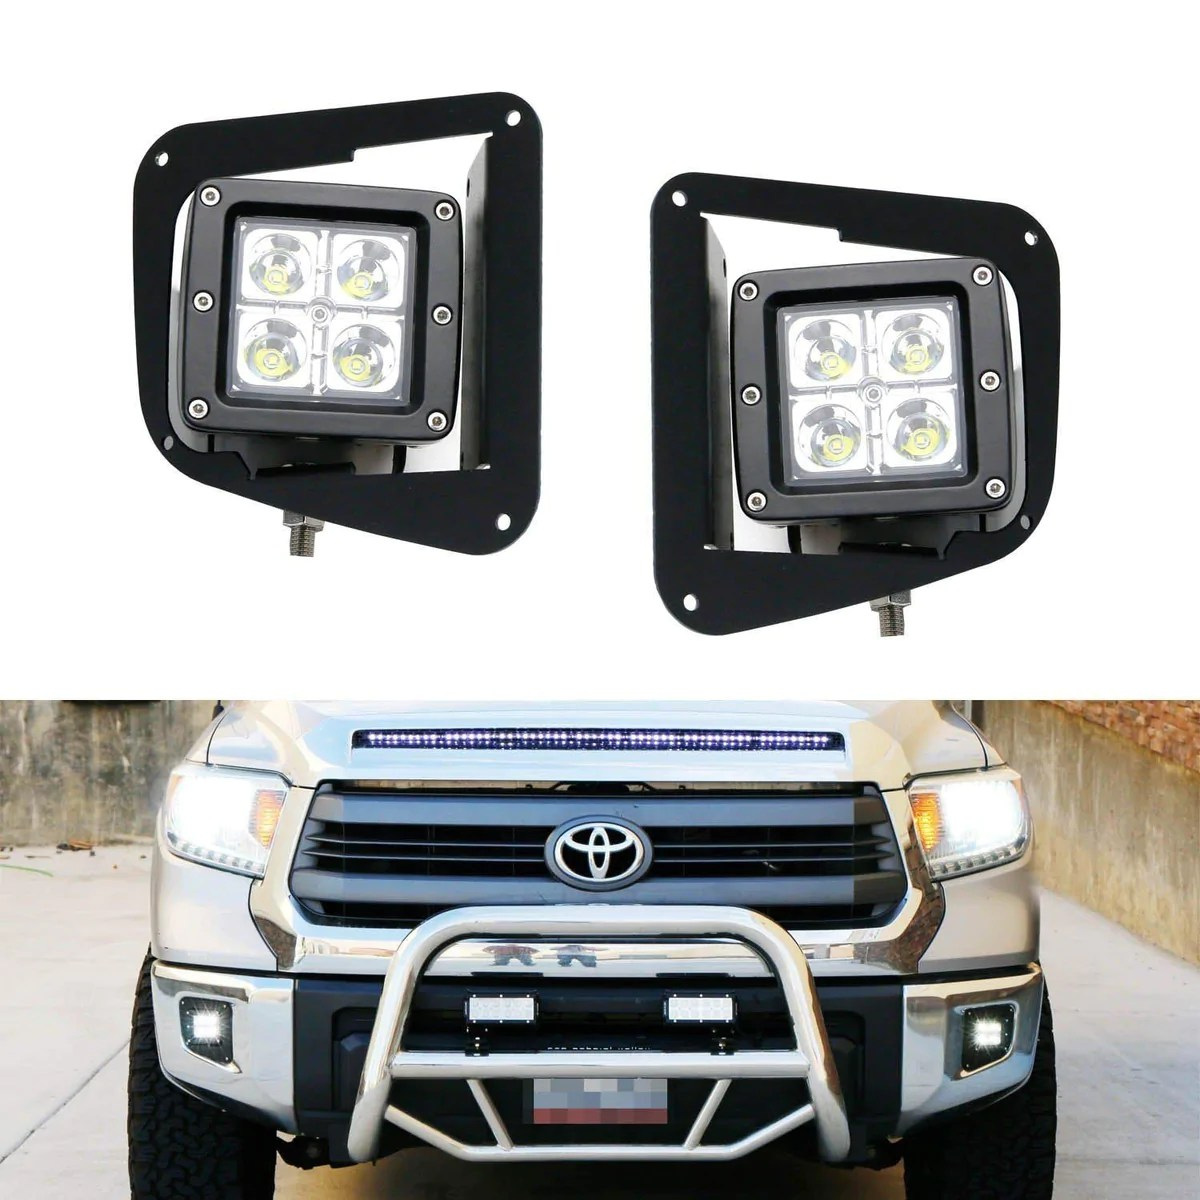 led pod light fog lamp kit for 2014 up toyota tundra includes 2 20w high power cree led cubes foglight bezel covers mounting brackets wiring adapter  [ 1200 x 1200 Pixel ]